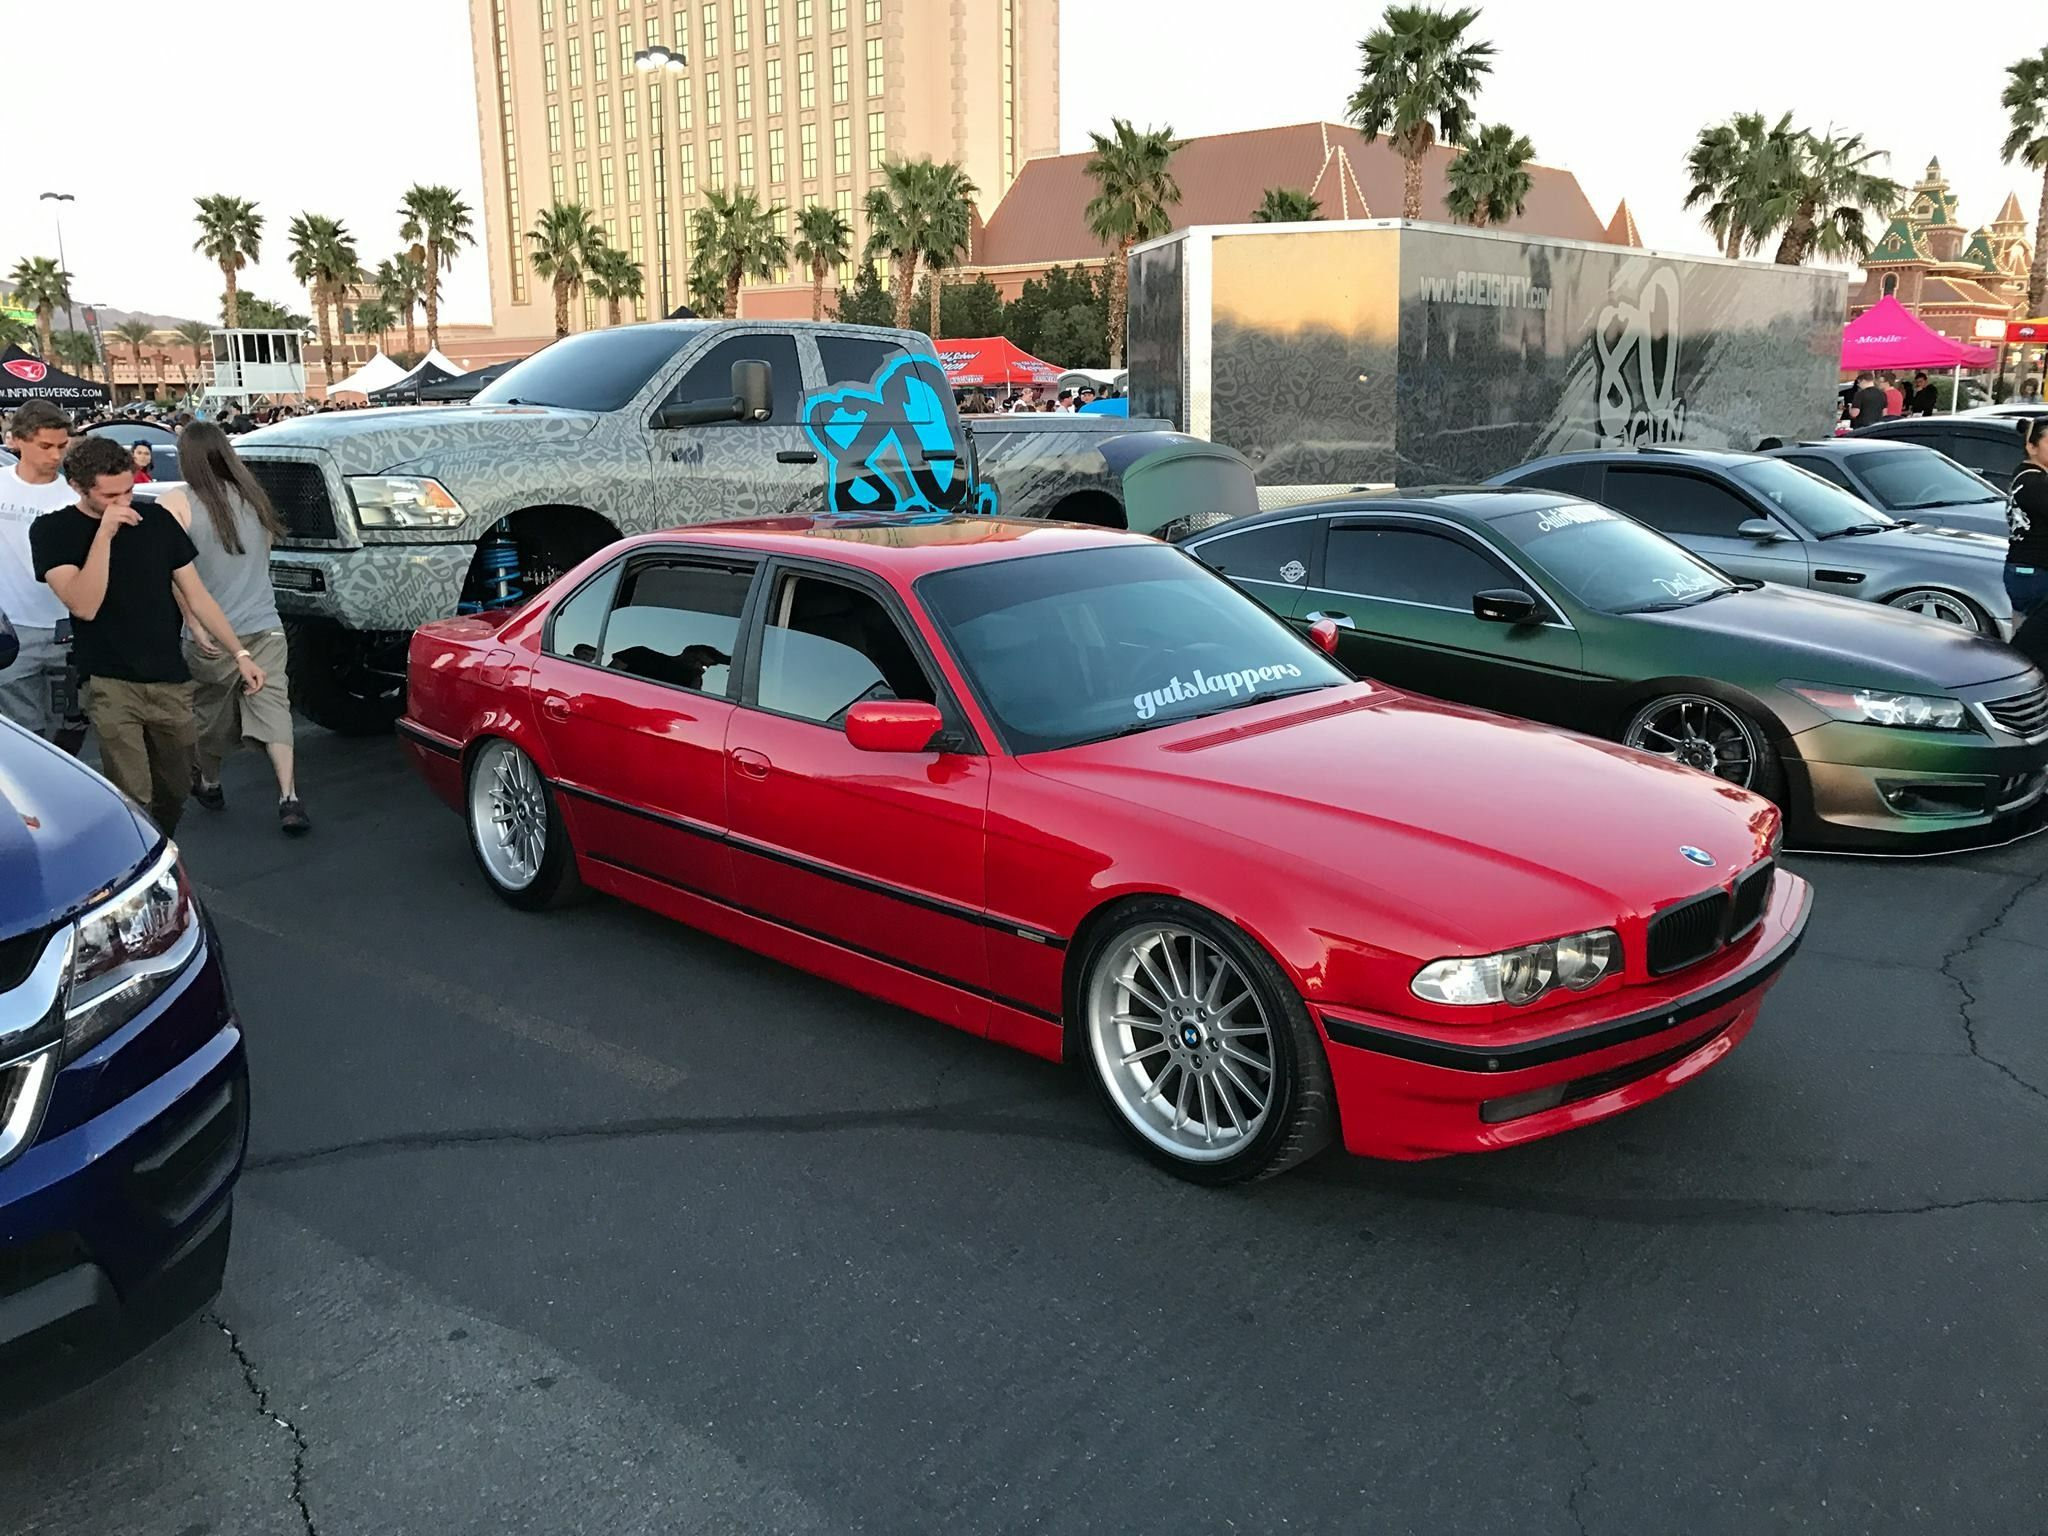 Bmw E38 Imola Rot With Style 32 20 With Images Bmw E38 Bmw